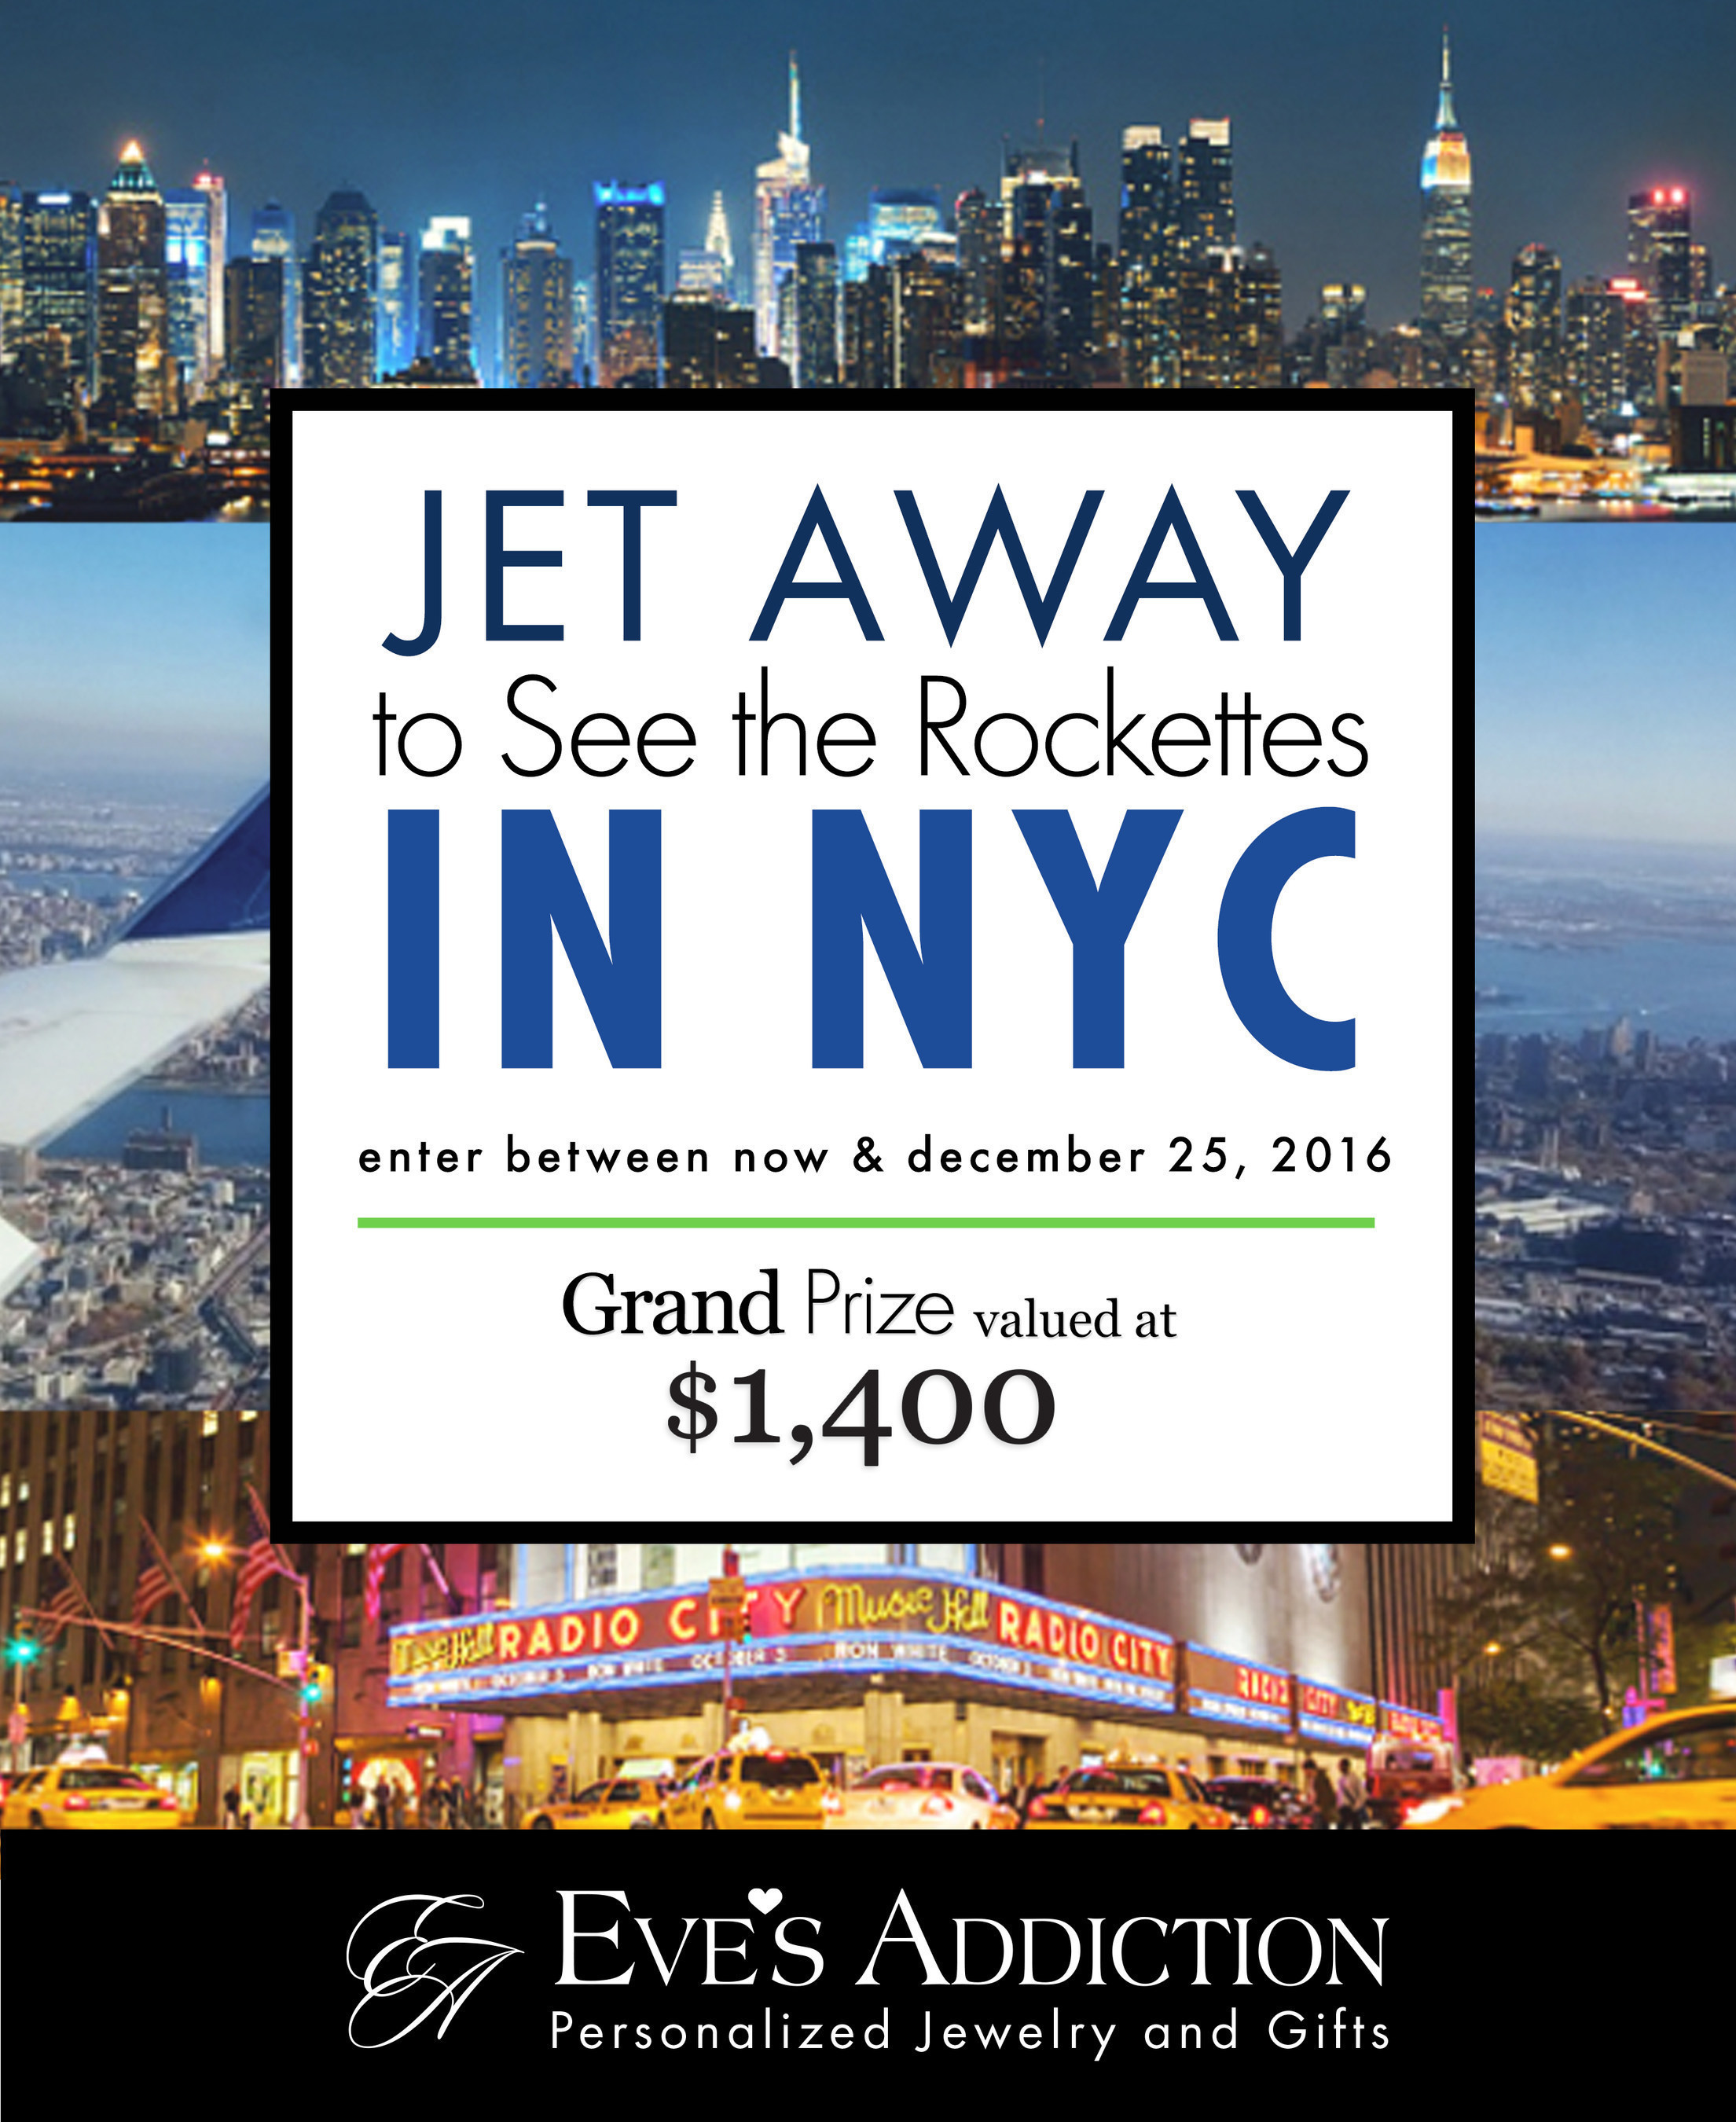 Eve's Addiction Launches the Jet Away to See the Rockettes in NYC Sweepstakes